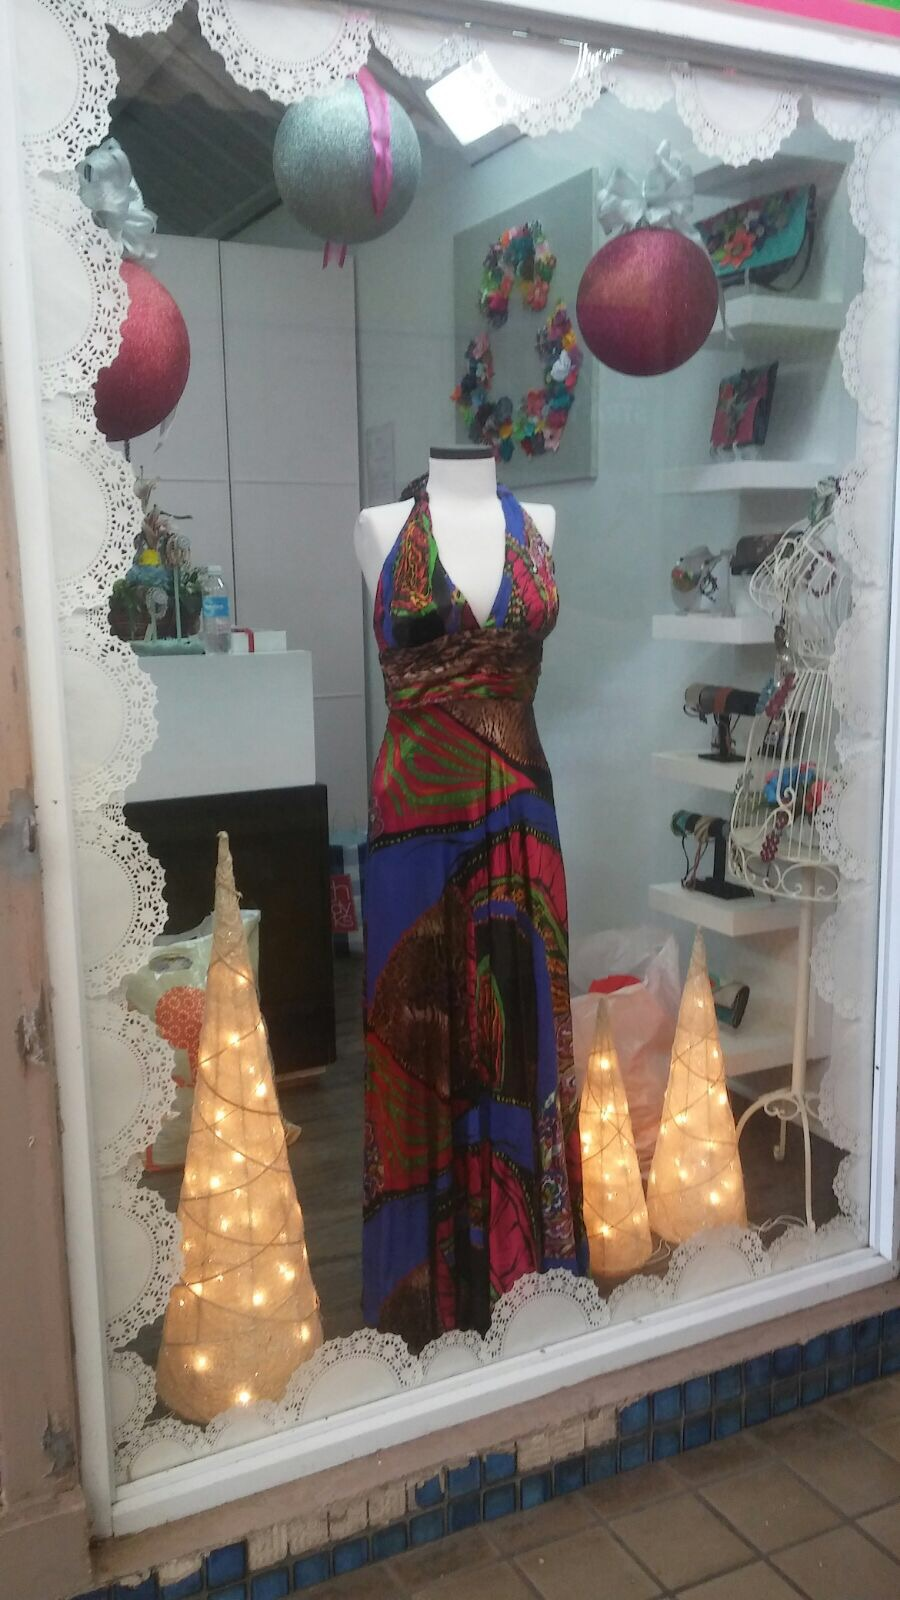 frances ramirez d'ocassion boutique caguas